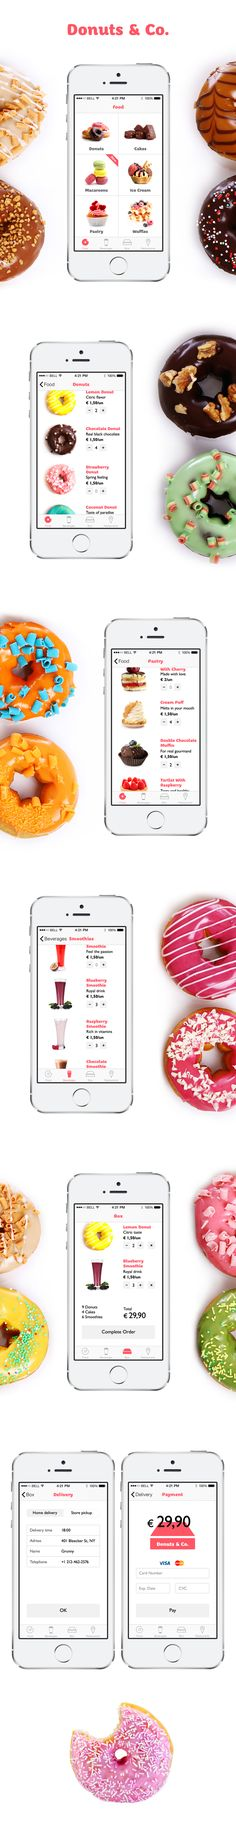 Donuts & Co. App by Ulyana Kravets, via Behance